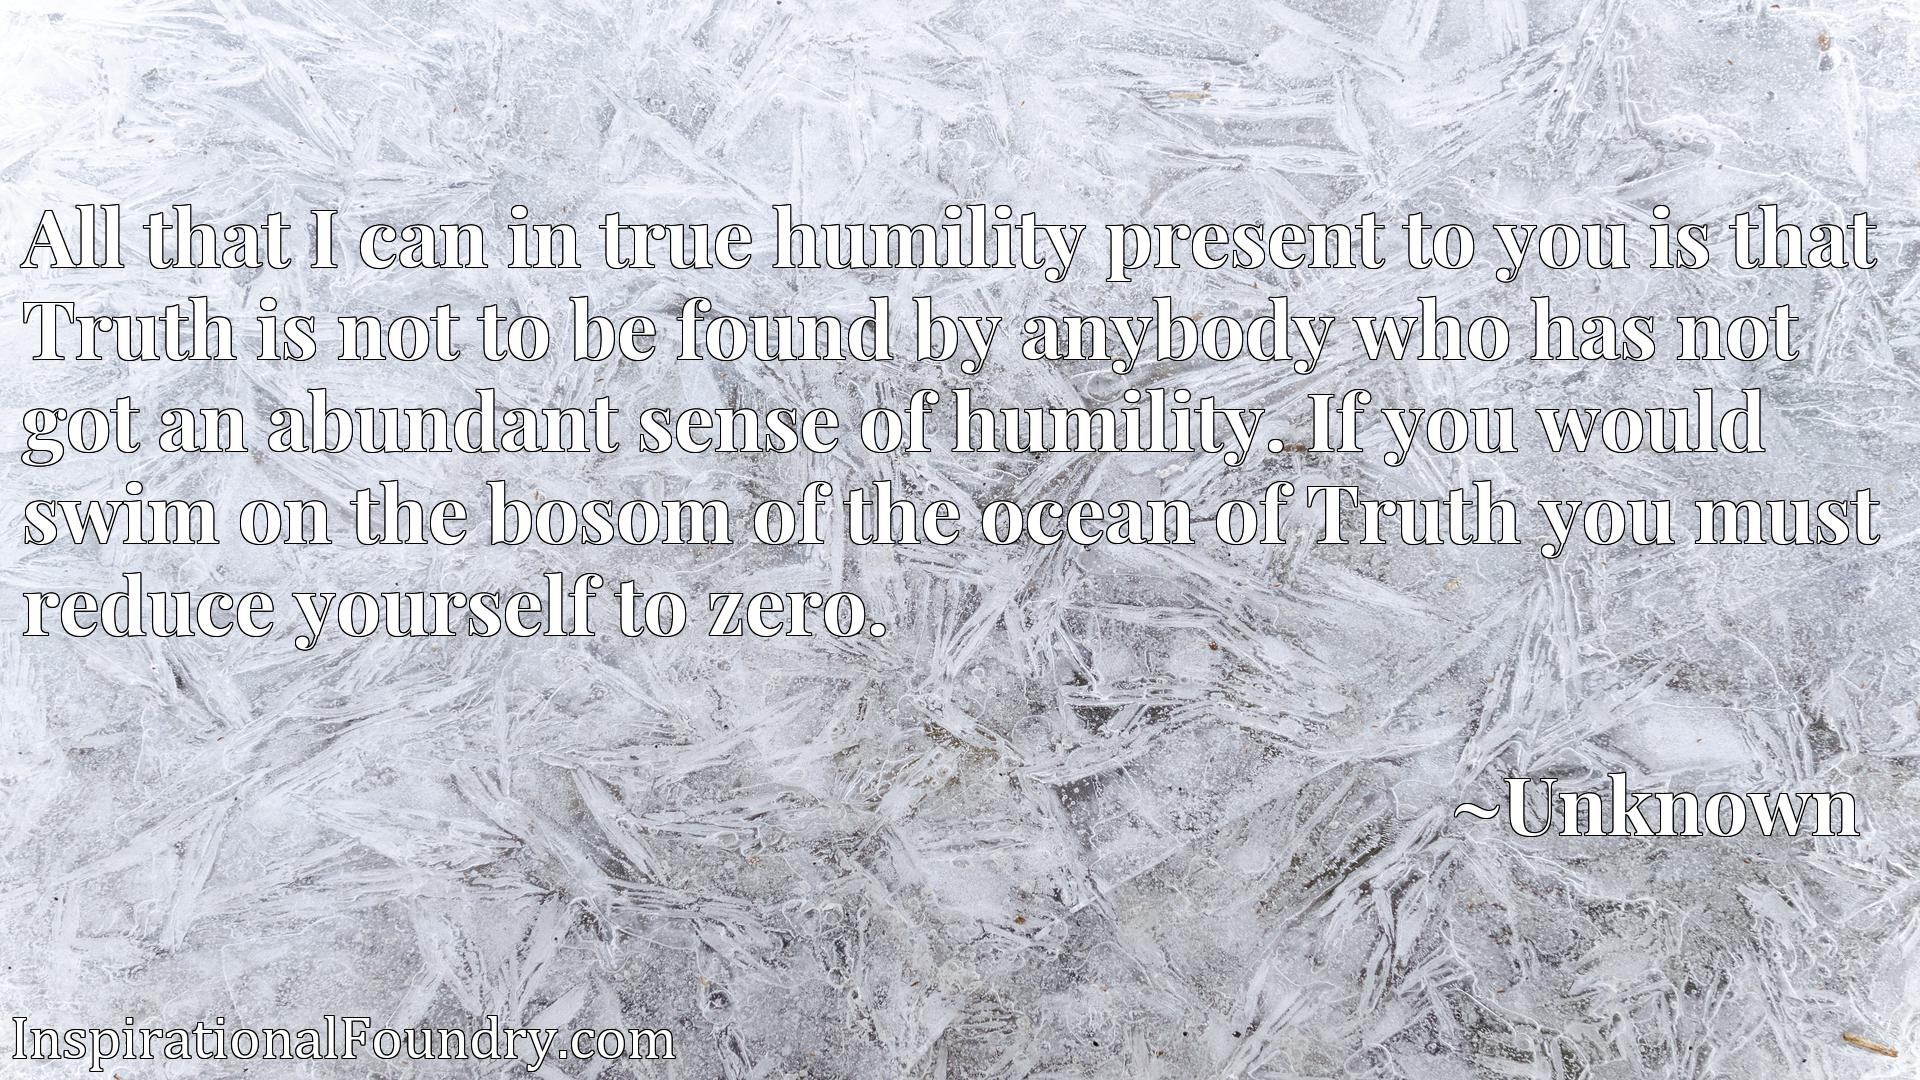 Quote Picture :All that I can in true humility present to you is that Truth is not to be found by anybody who has not got an abundant sense of humility. If you would swim on the bosom of the ocean of Truth you must reduce yourself to zero.